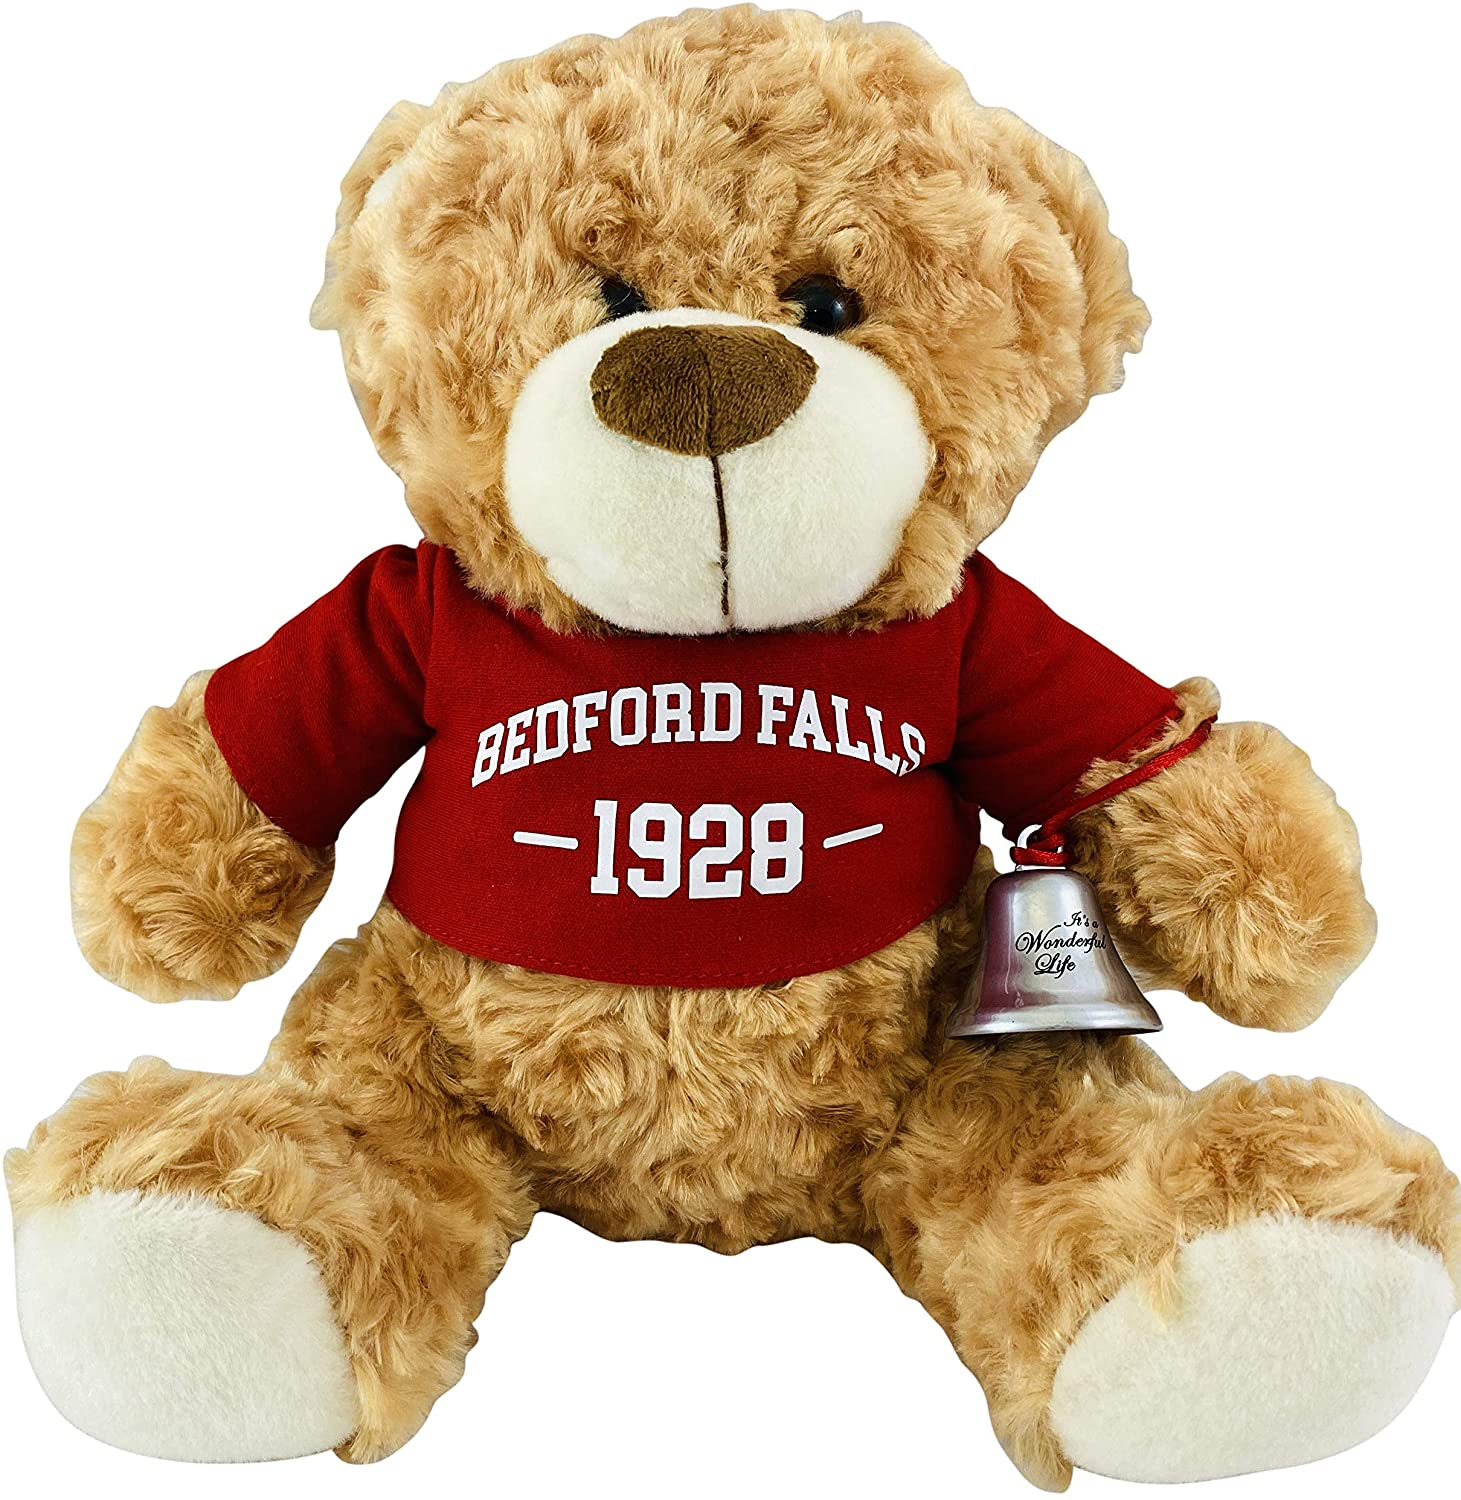 Bedford Falls Teddy Bear Plush Toy with Its a Wonderful Life Bell Christmas Ornament